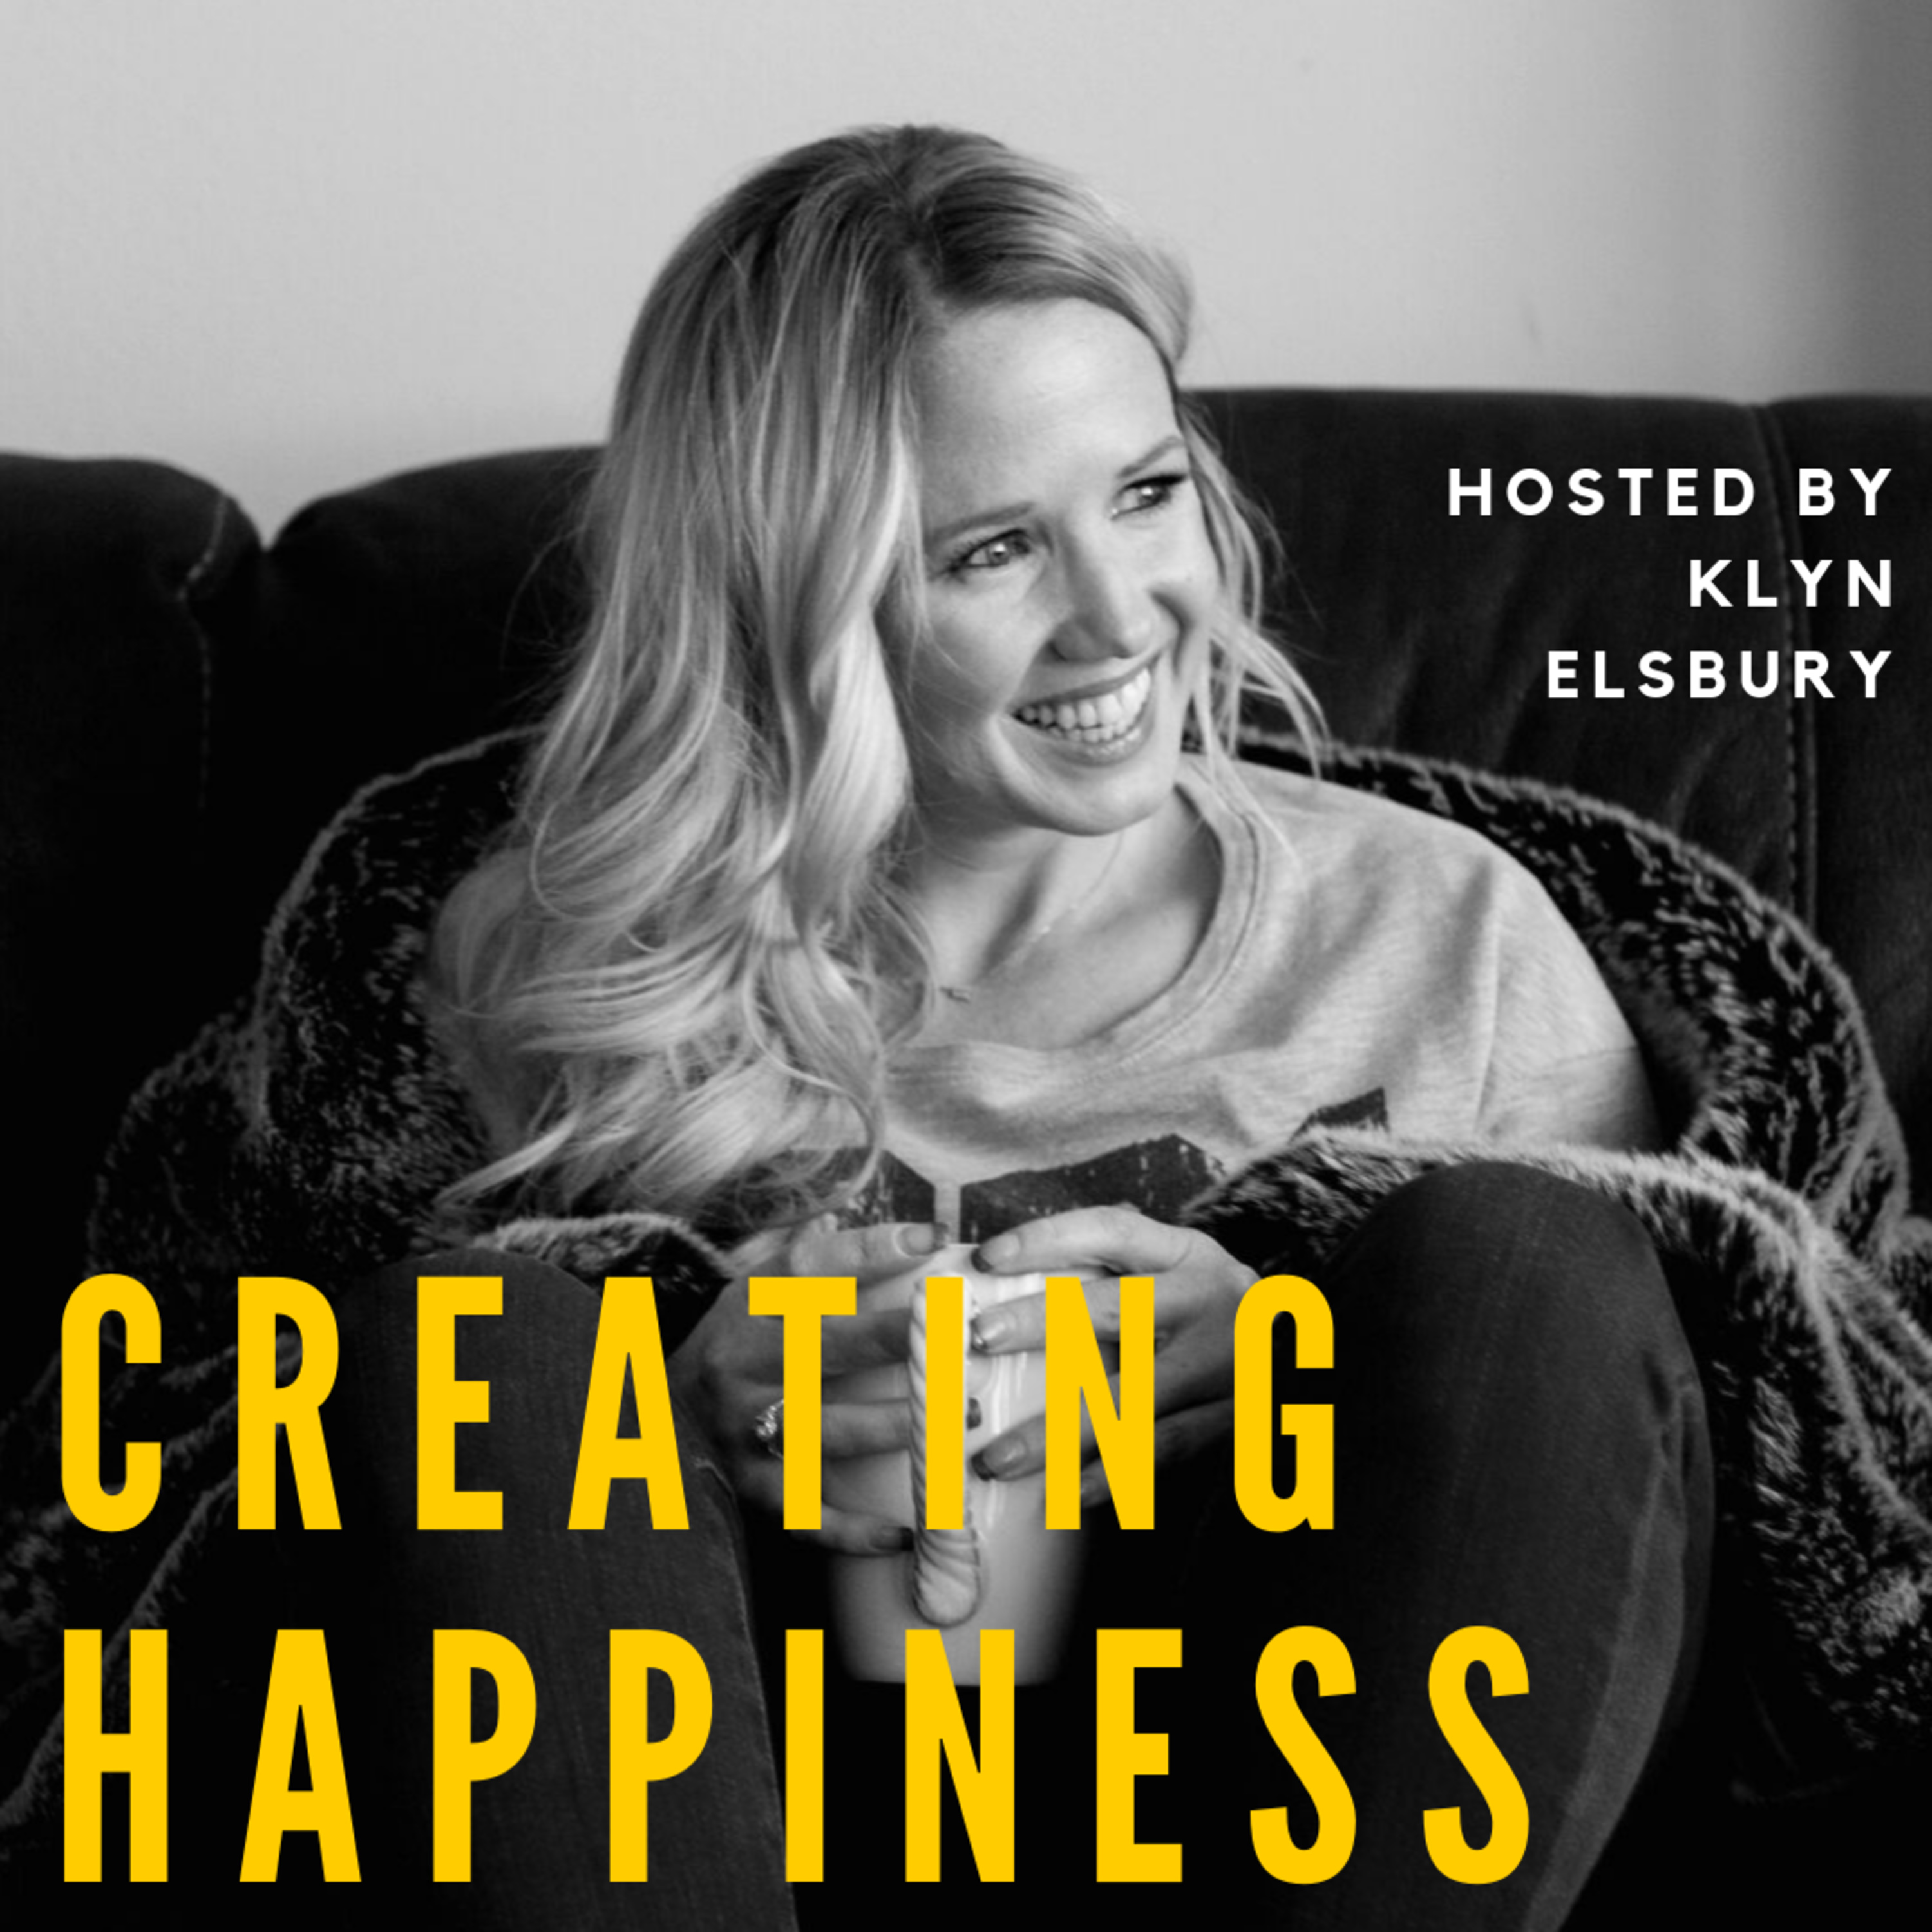 Creating happiness when hope is lost